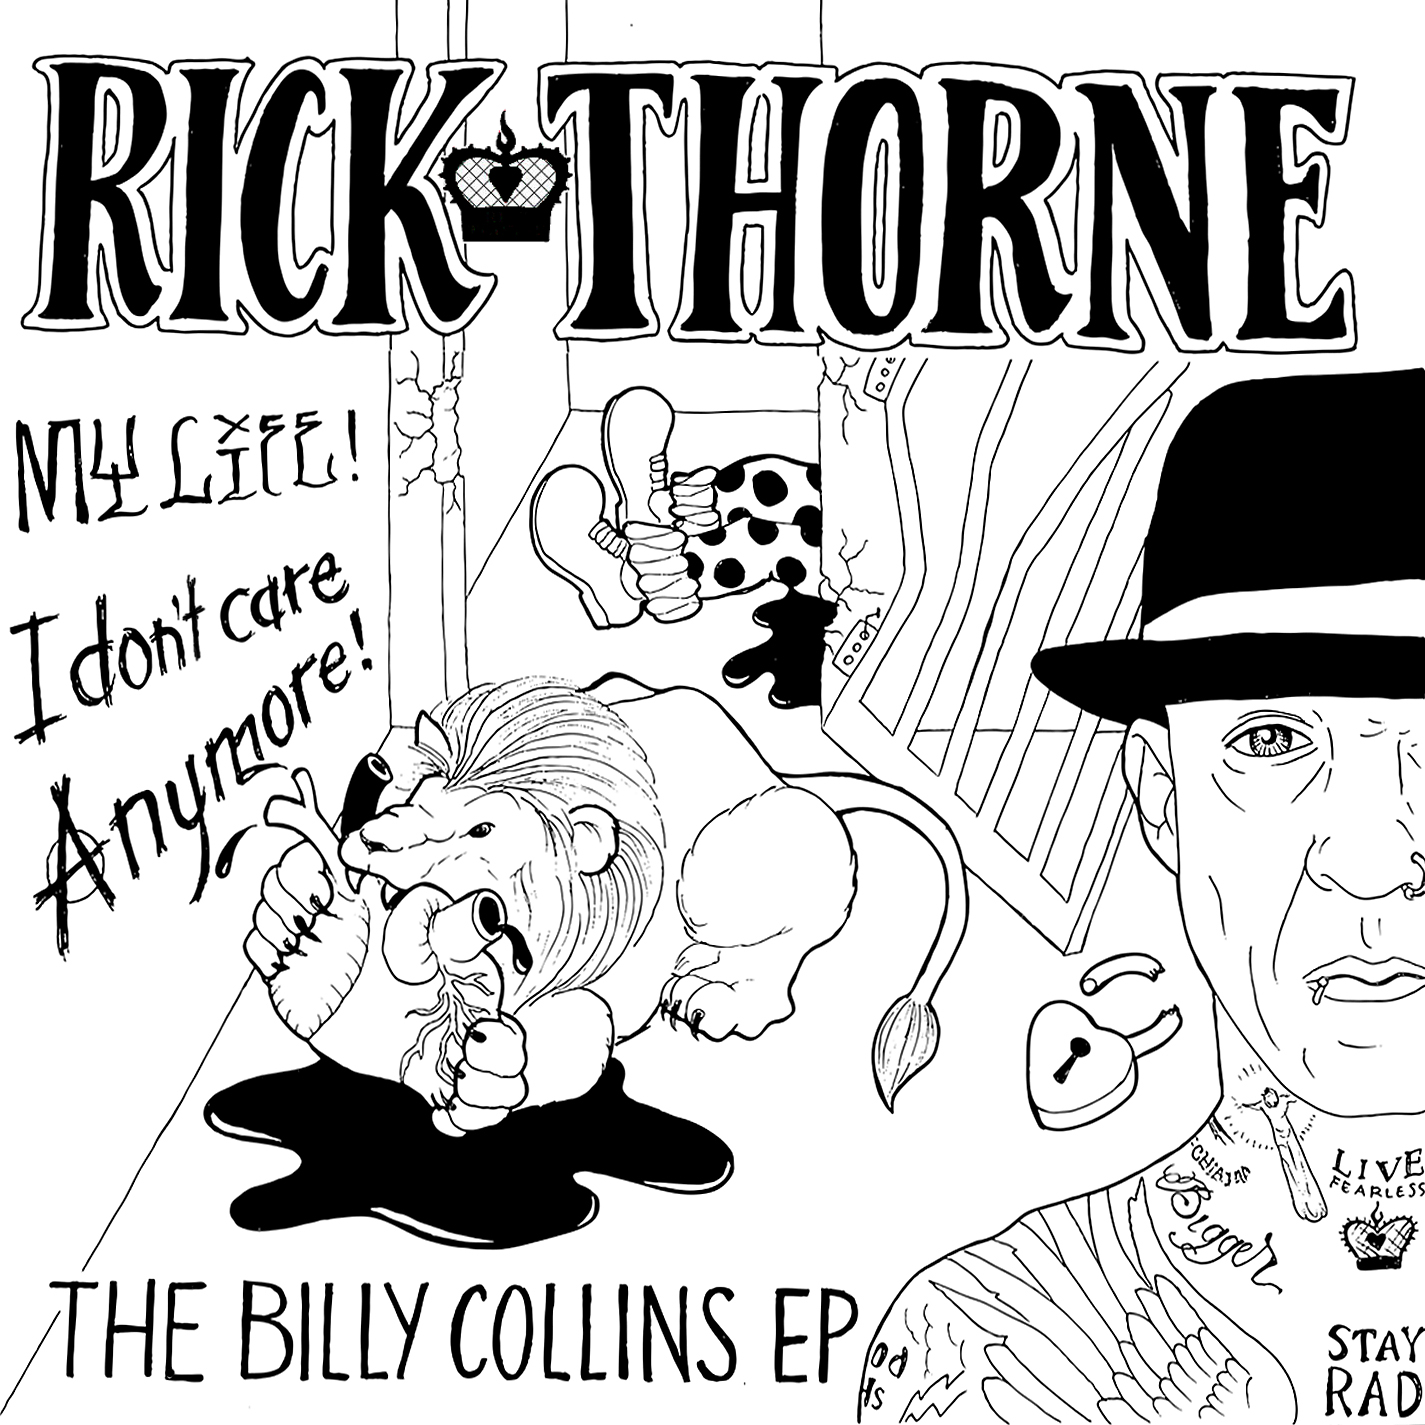 The Billy Collins EP